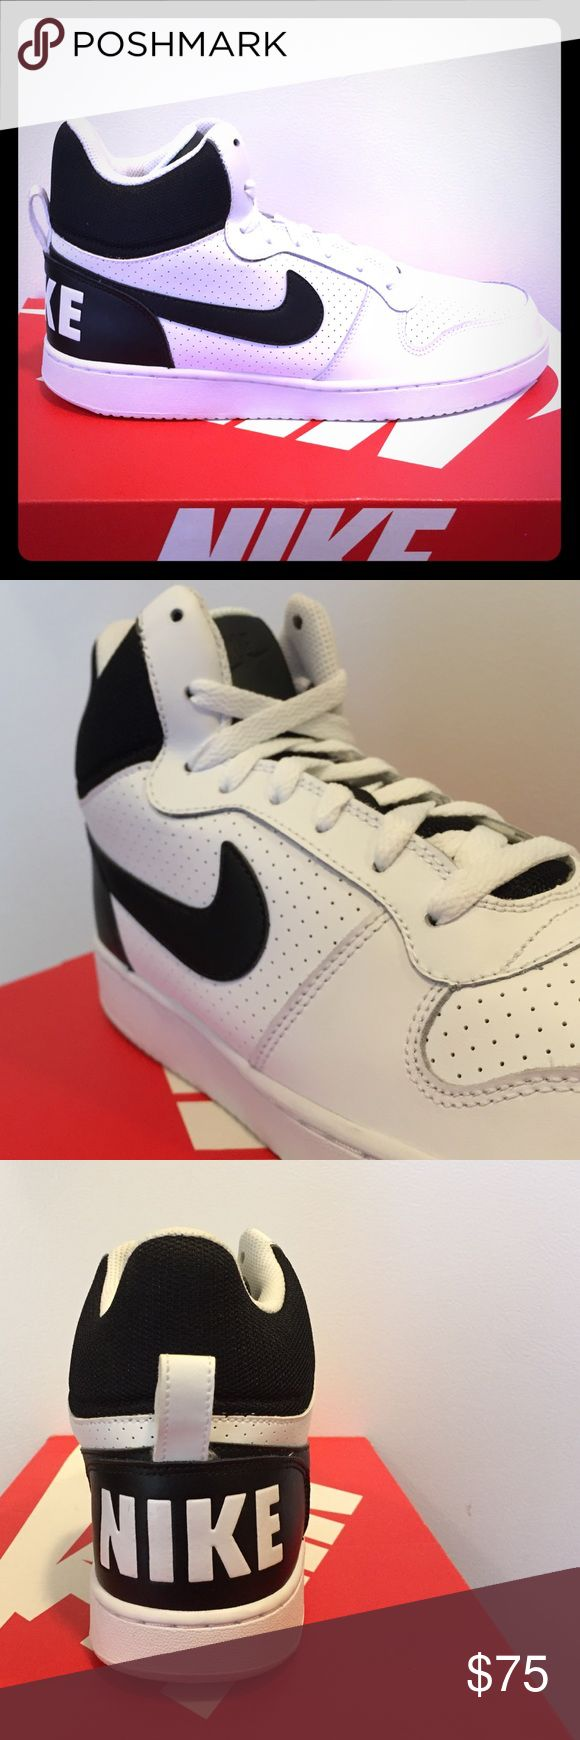 BRAND NEW Nike Courtborough Mids!!! Go BACK IN TIME with these heritage inspired mid top Nike Courtborough basketball shoes!!!eather stitch down overlay, rubber outsole and cushioned insole! Get retro with these RAD Nike Mids!!! Nike Shoes Athletic Shoes